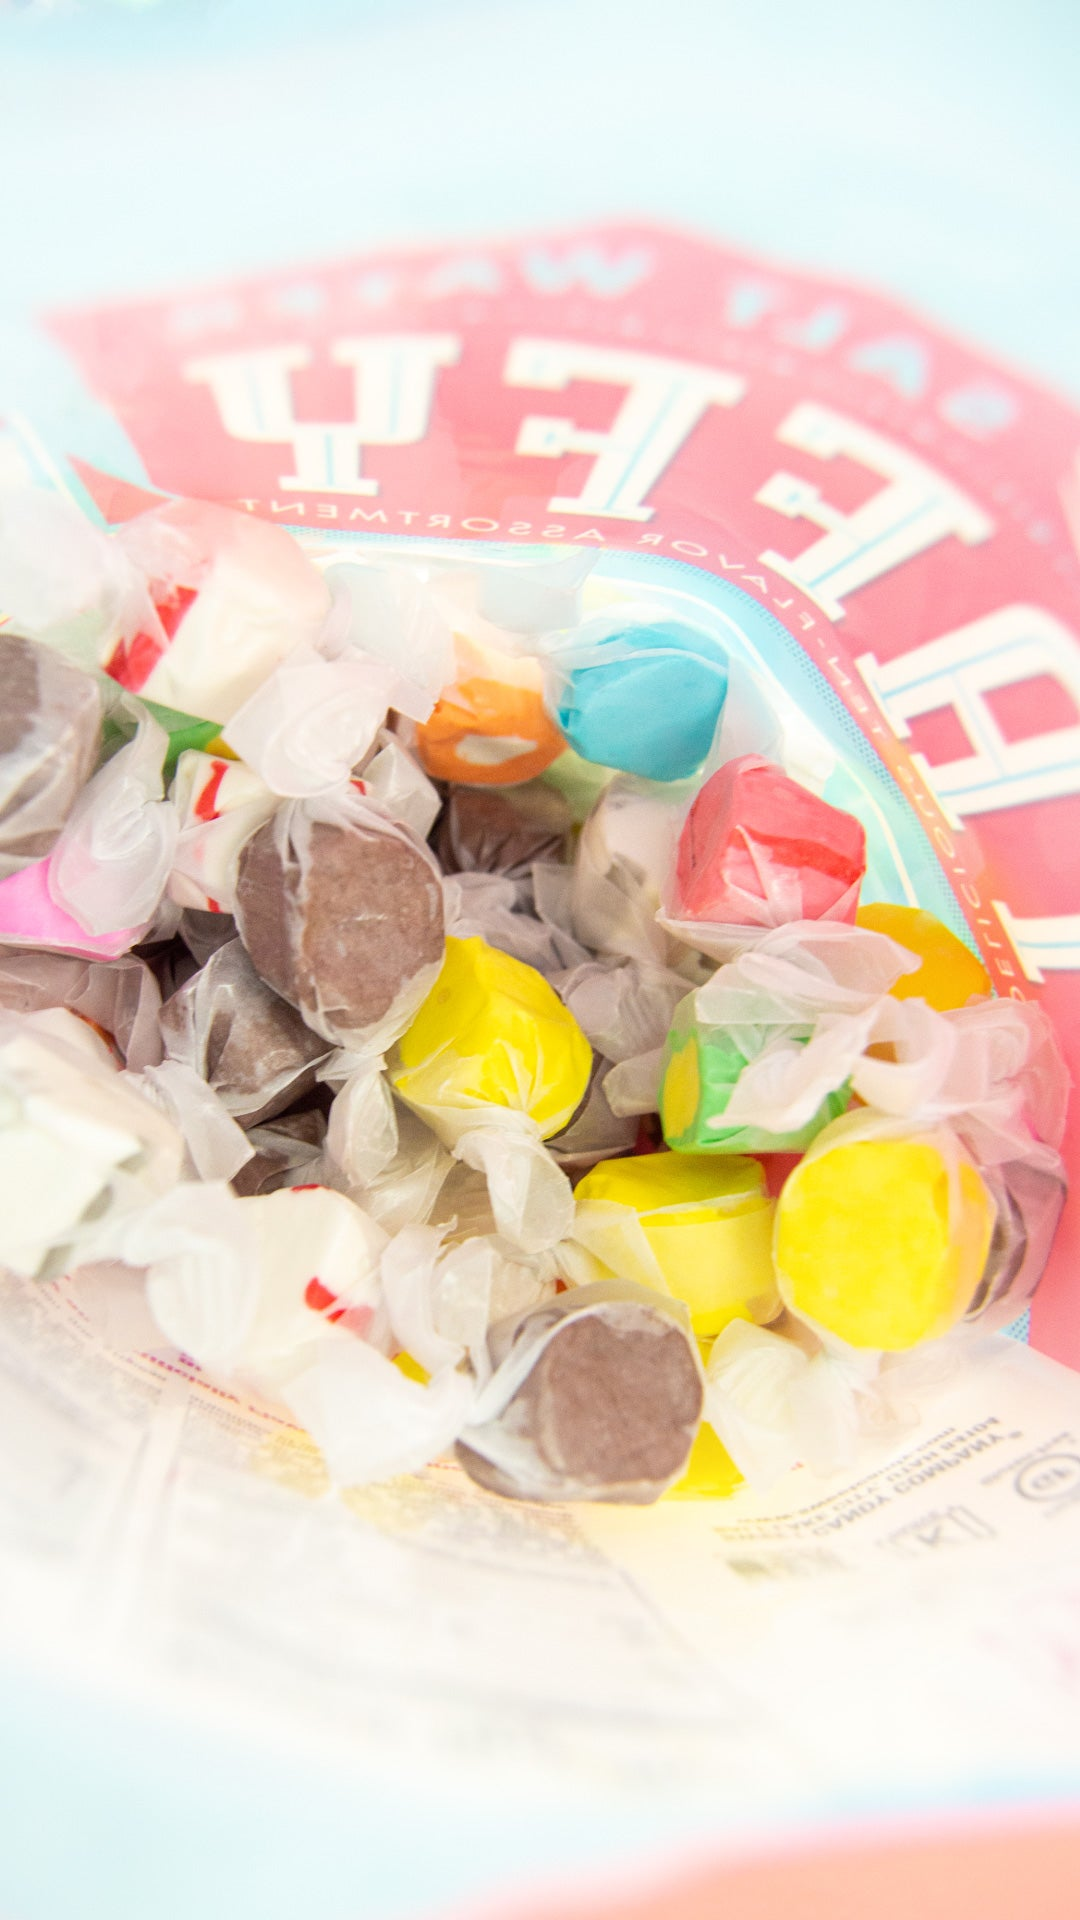 Inside a Taffy Bag - Free Shipping! For Any Order Over $75